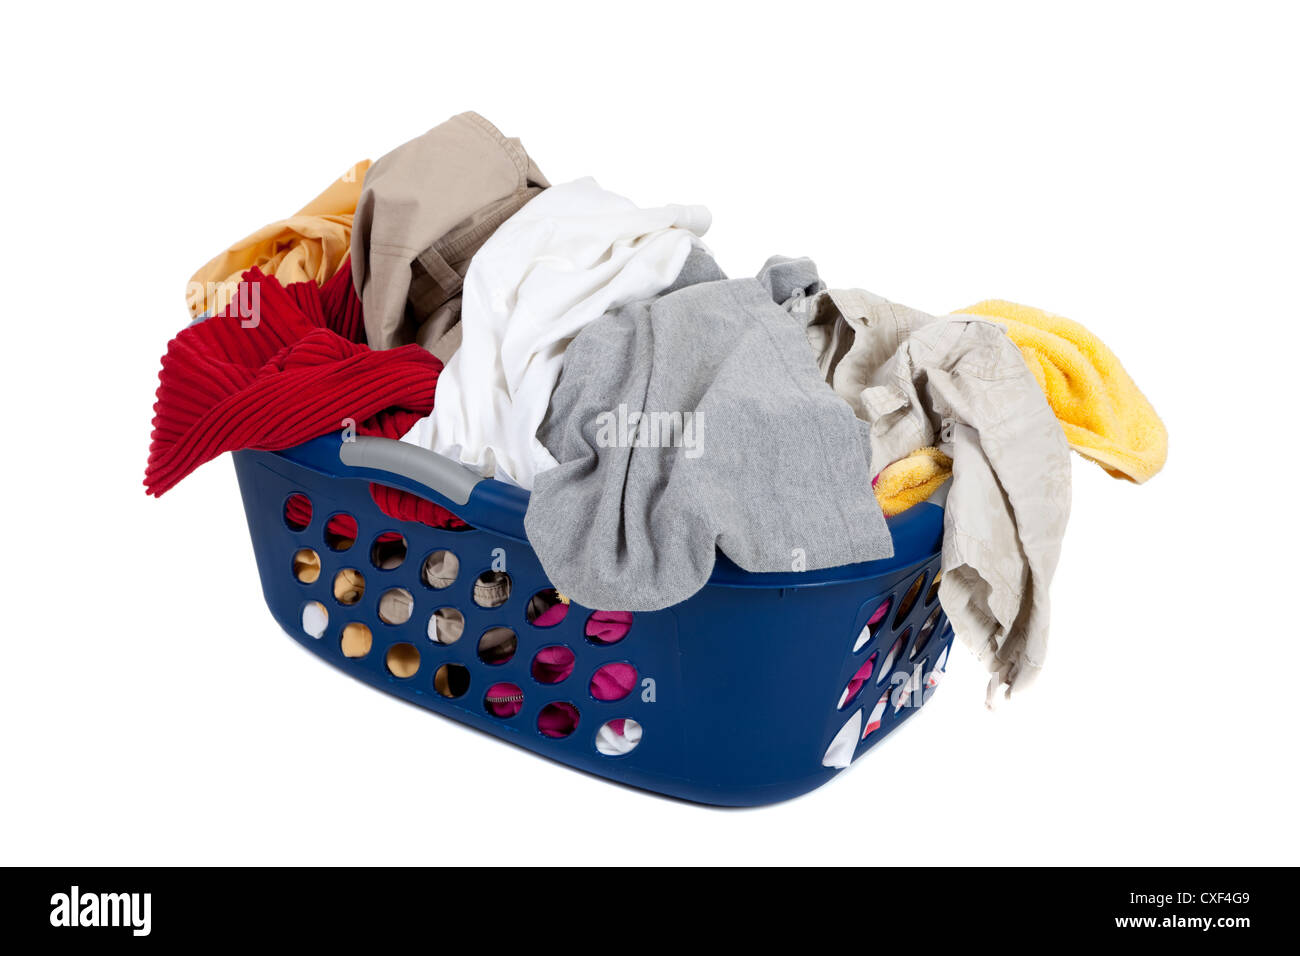 Dirty Laundry Baskets Dirty Laundry Stock Photos Dirty Laundry Stock Images Alamy